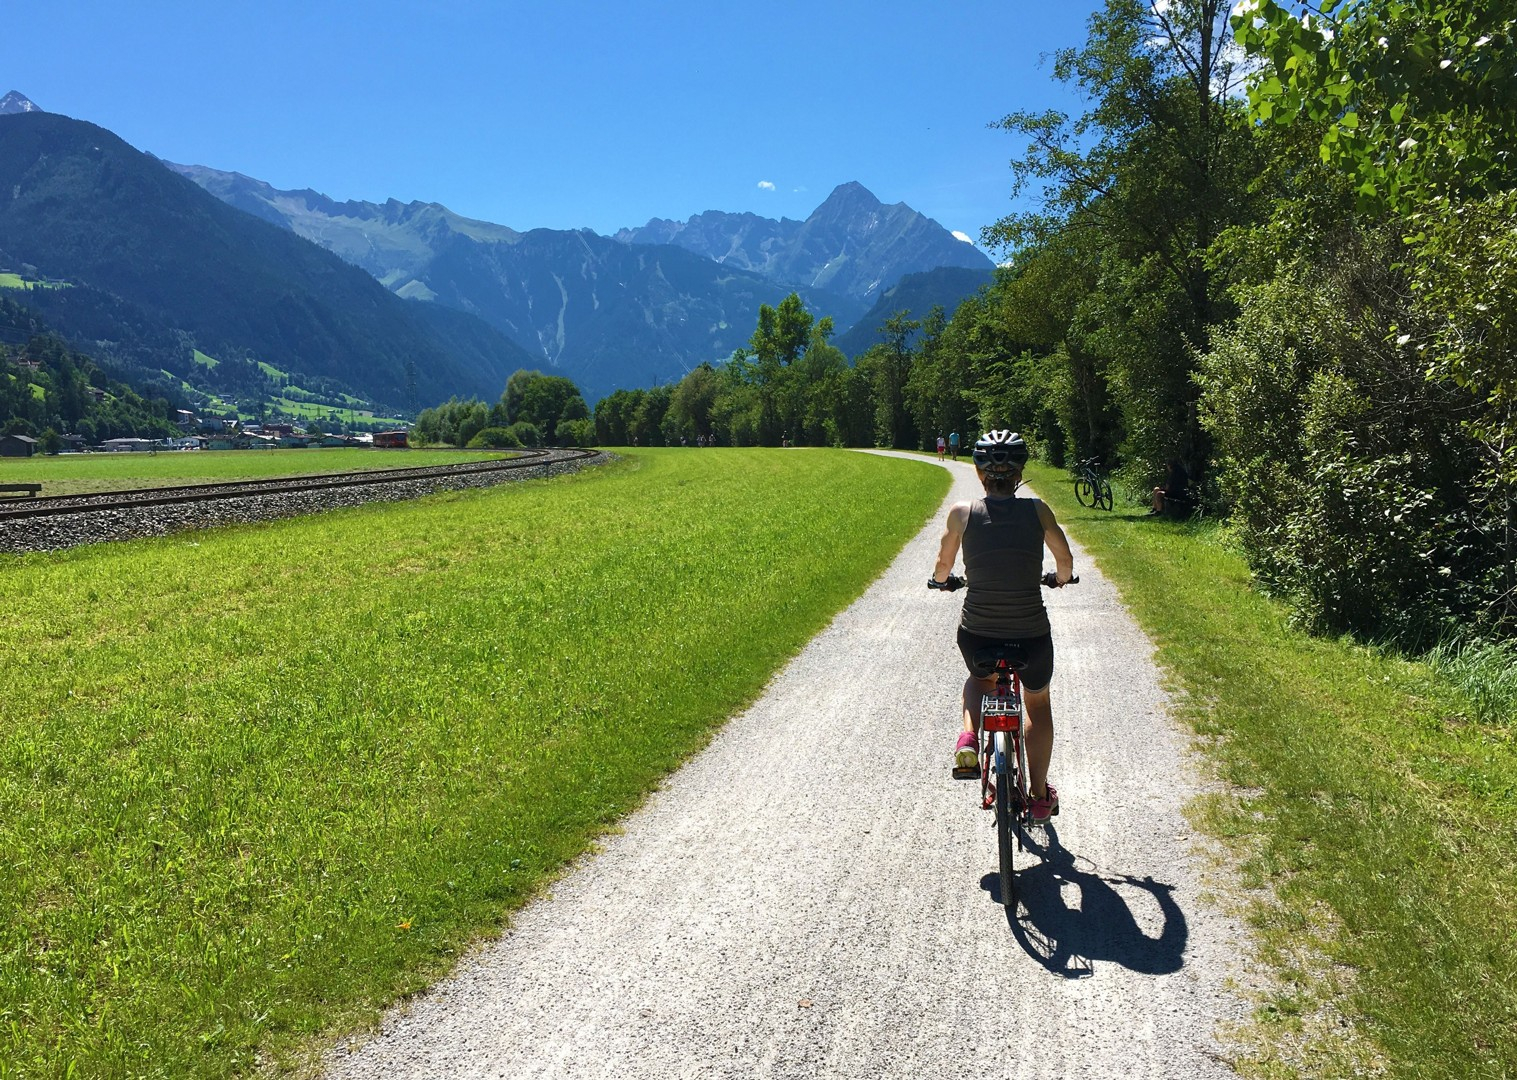 austria-fields-family-cycling-bikes.jpg - NEW! Austria - Tauern Valleys - Self-Guided Family Cycling Holiday - Family Cycling